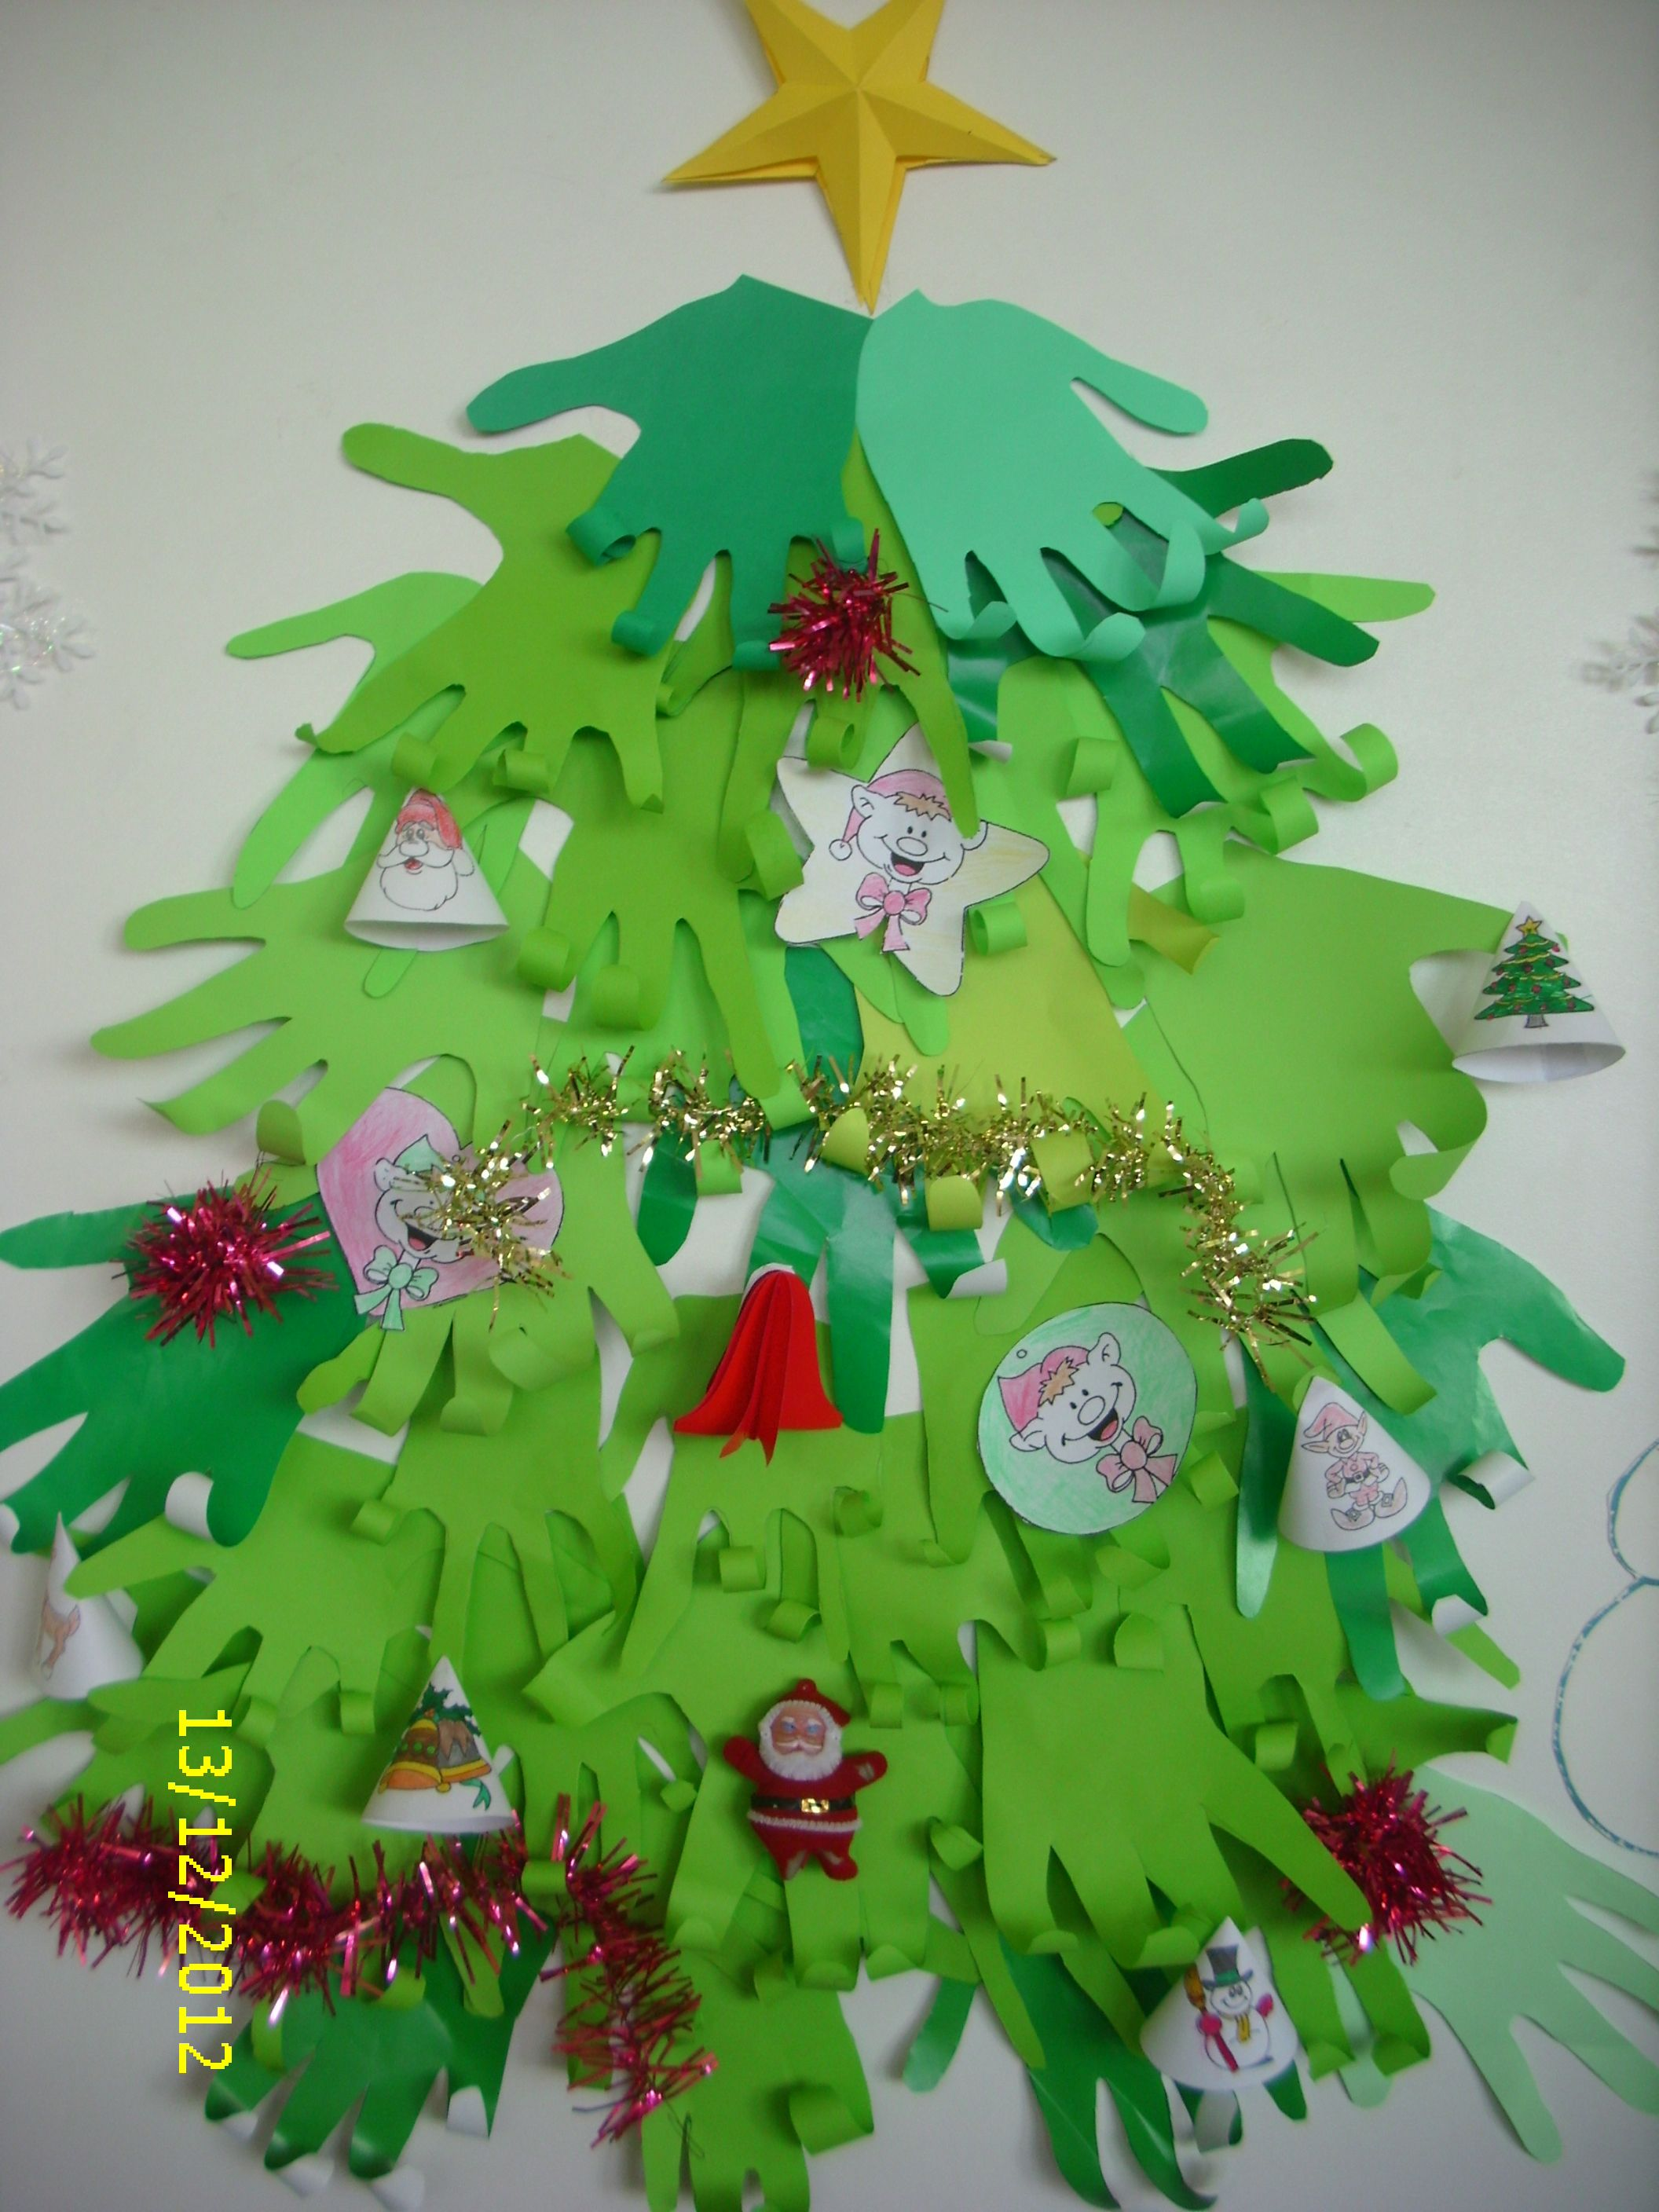 Christmas Tree From Paper Hands Crafts Christmas Ornaments Holiday Decor